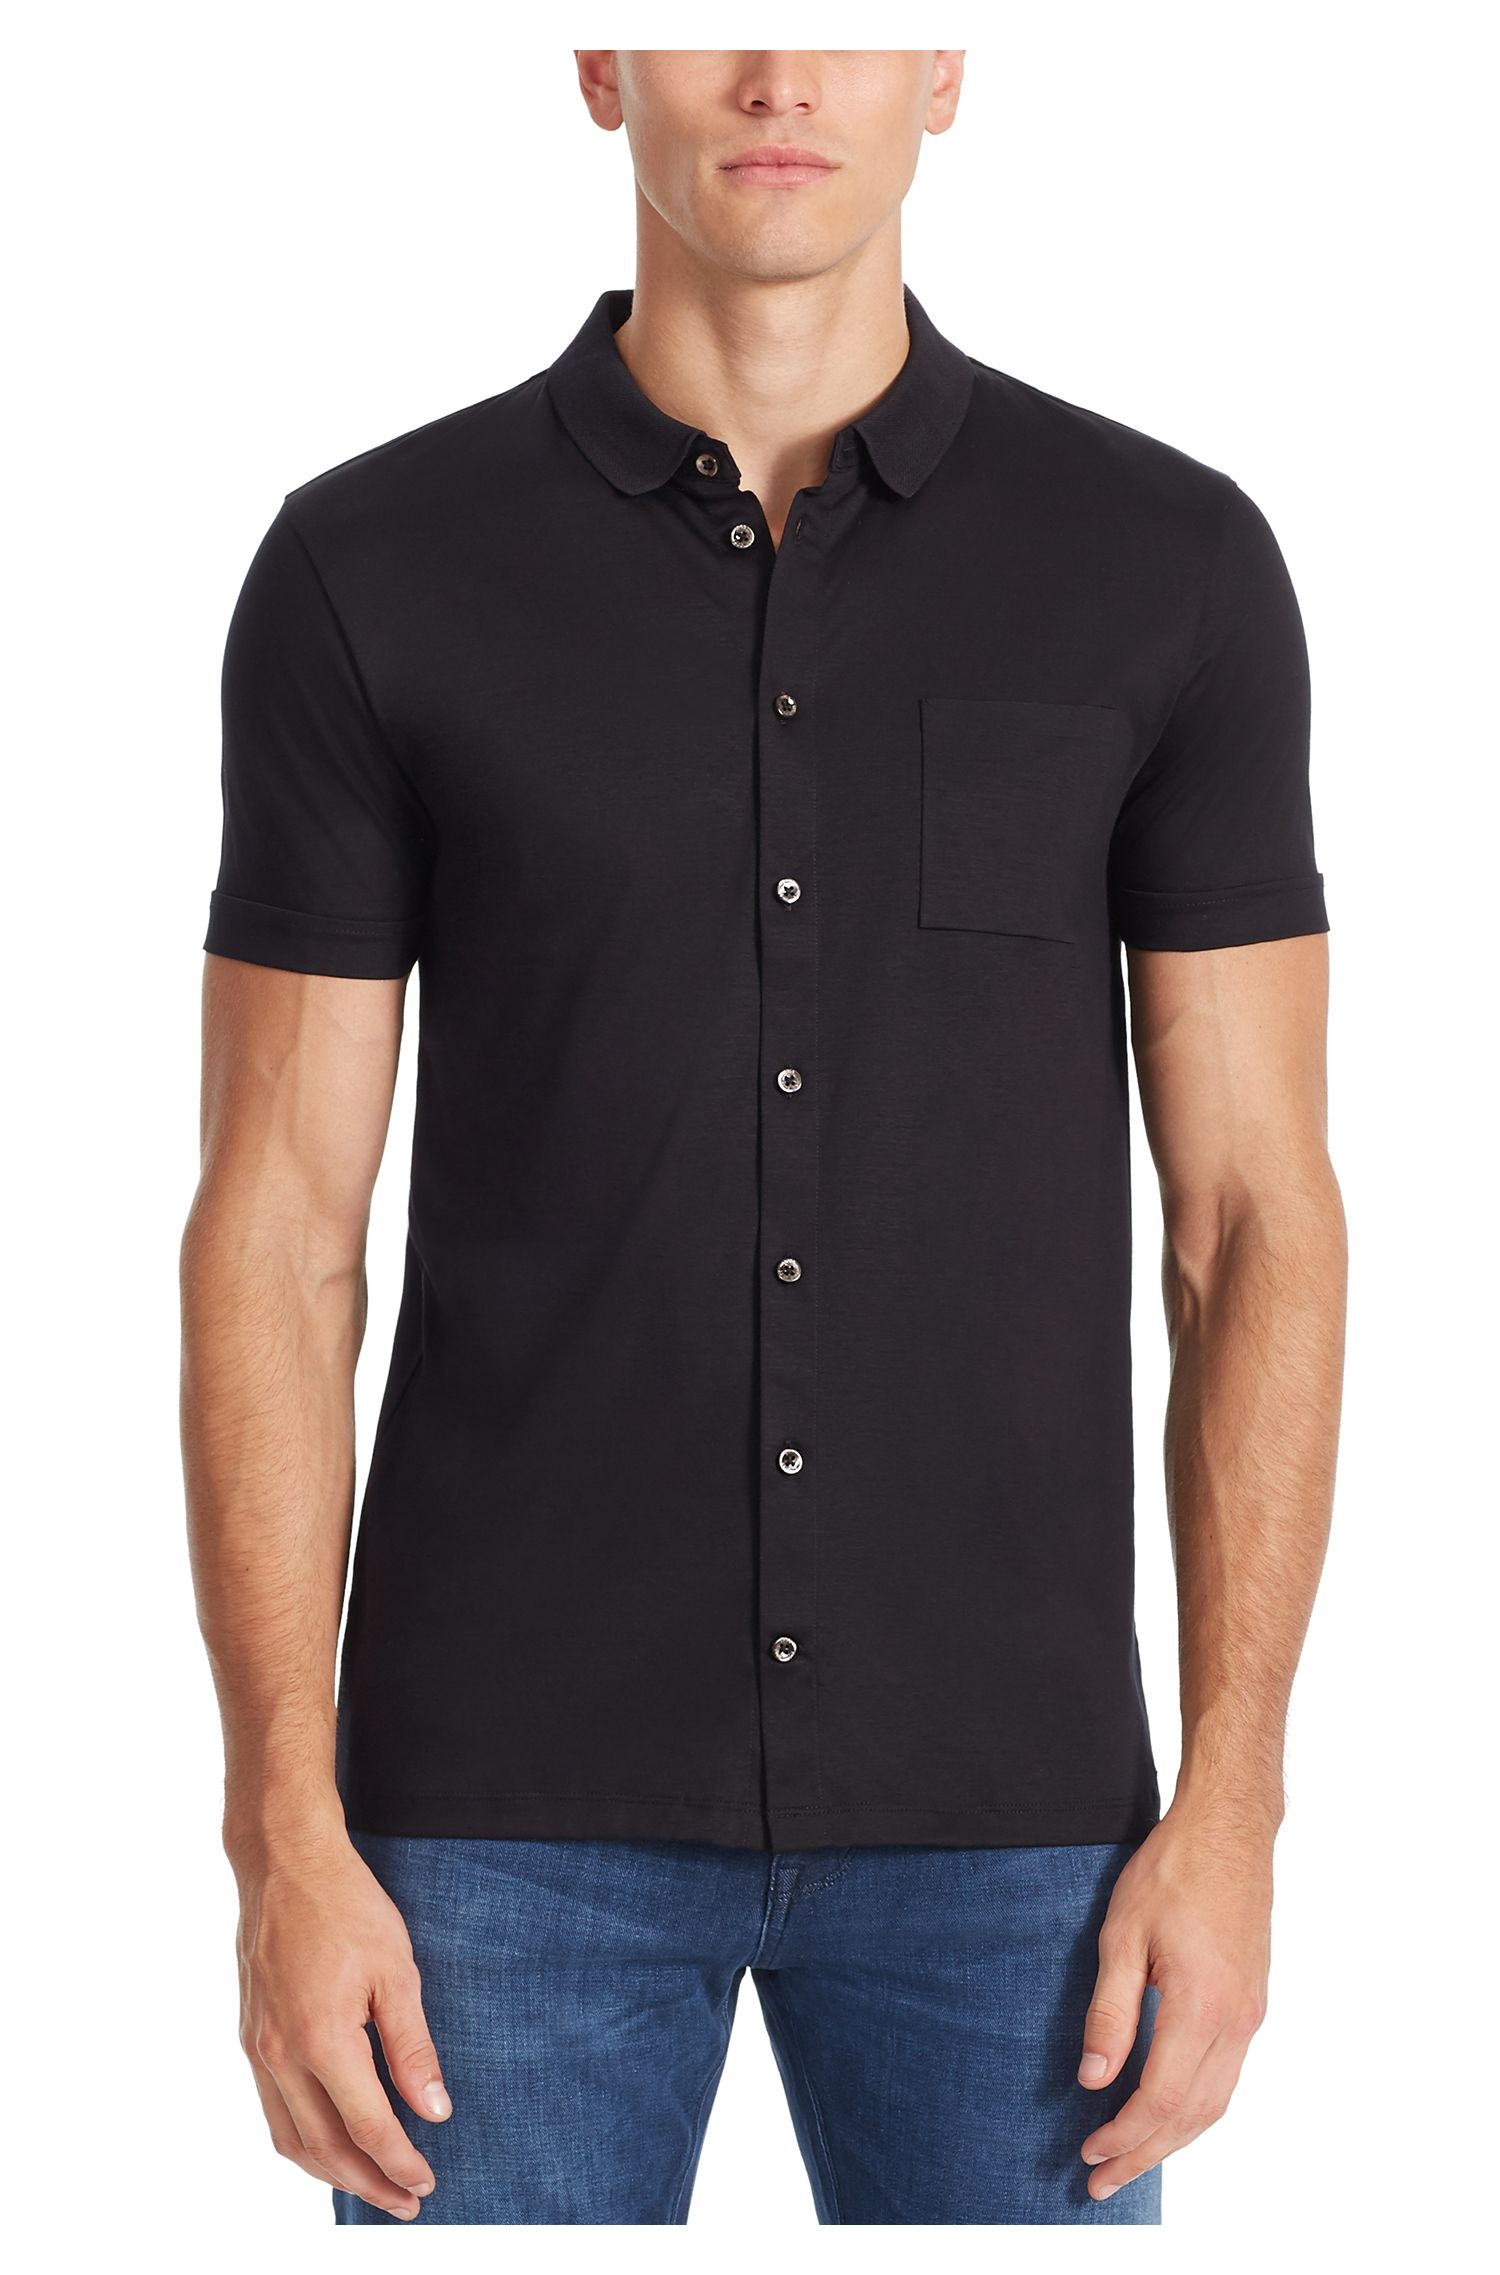 Cotton Polo Shirt, Slim Fit | Puno, Black